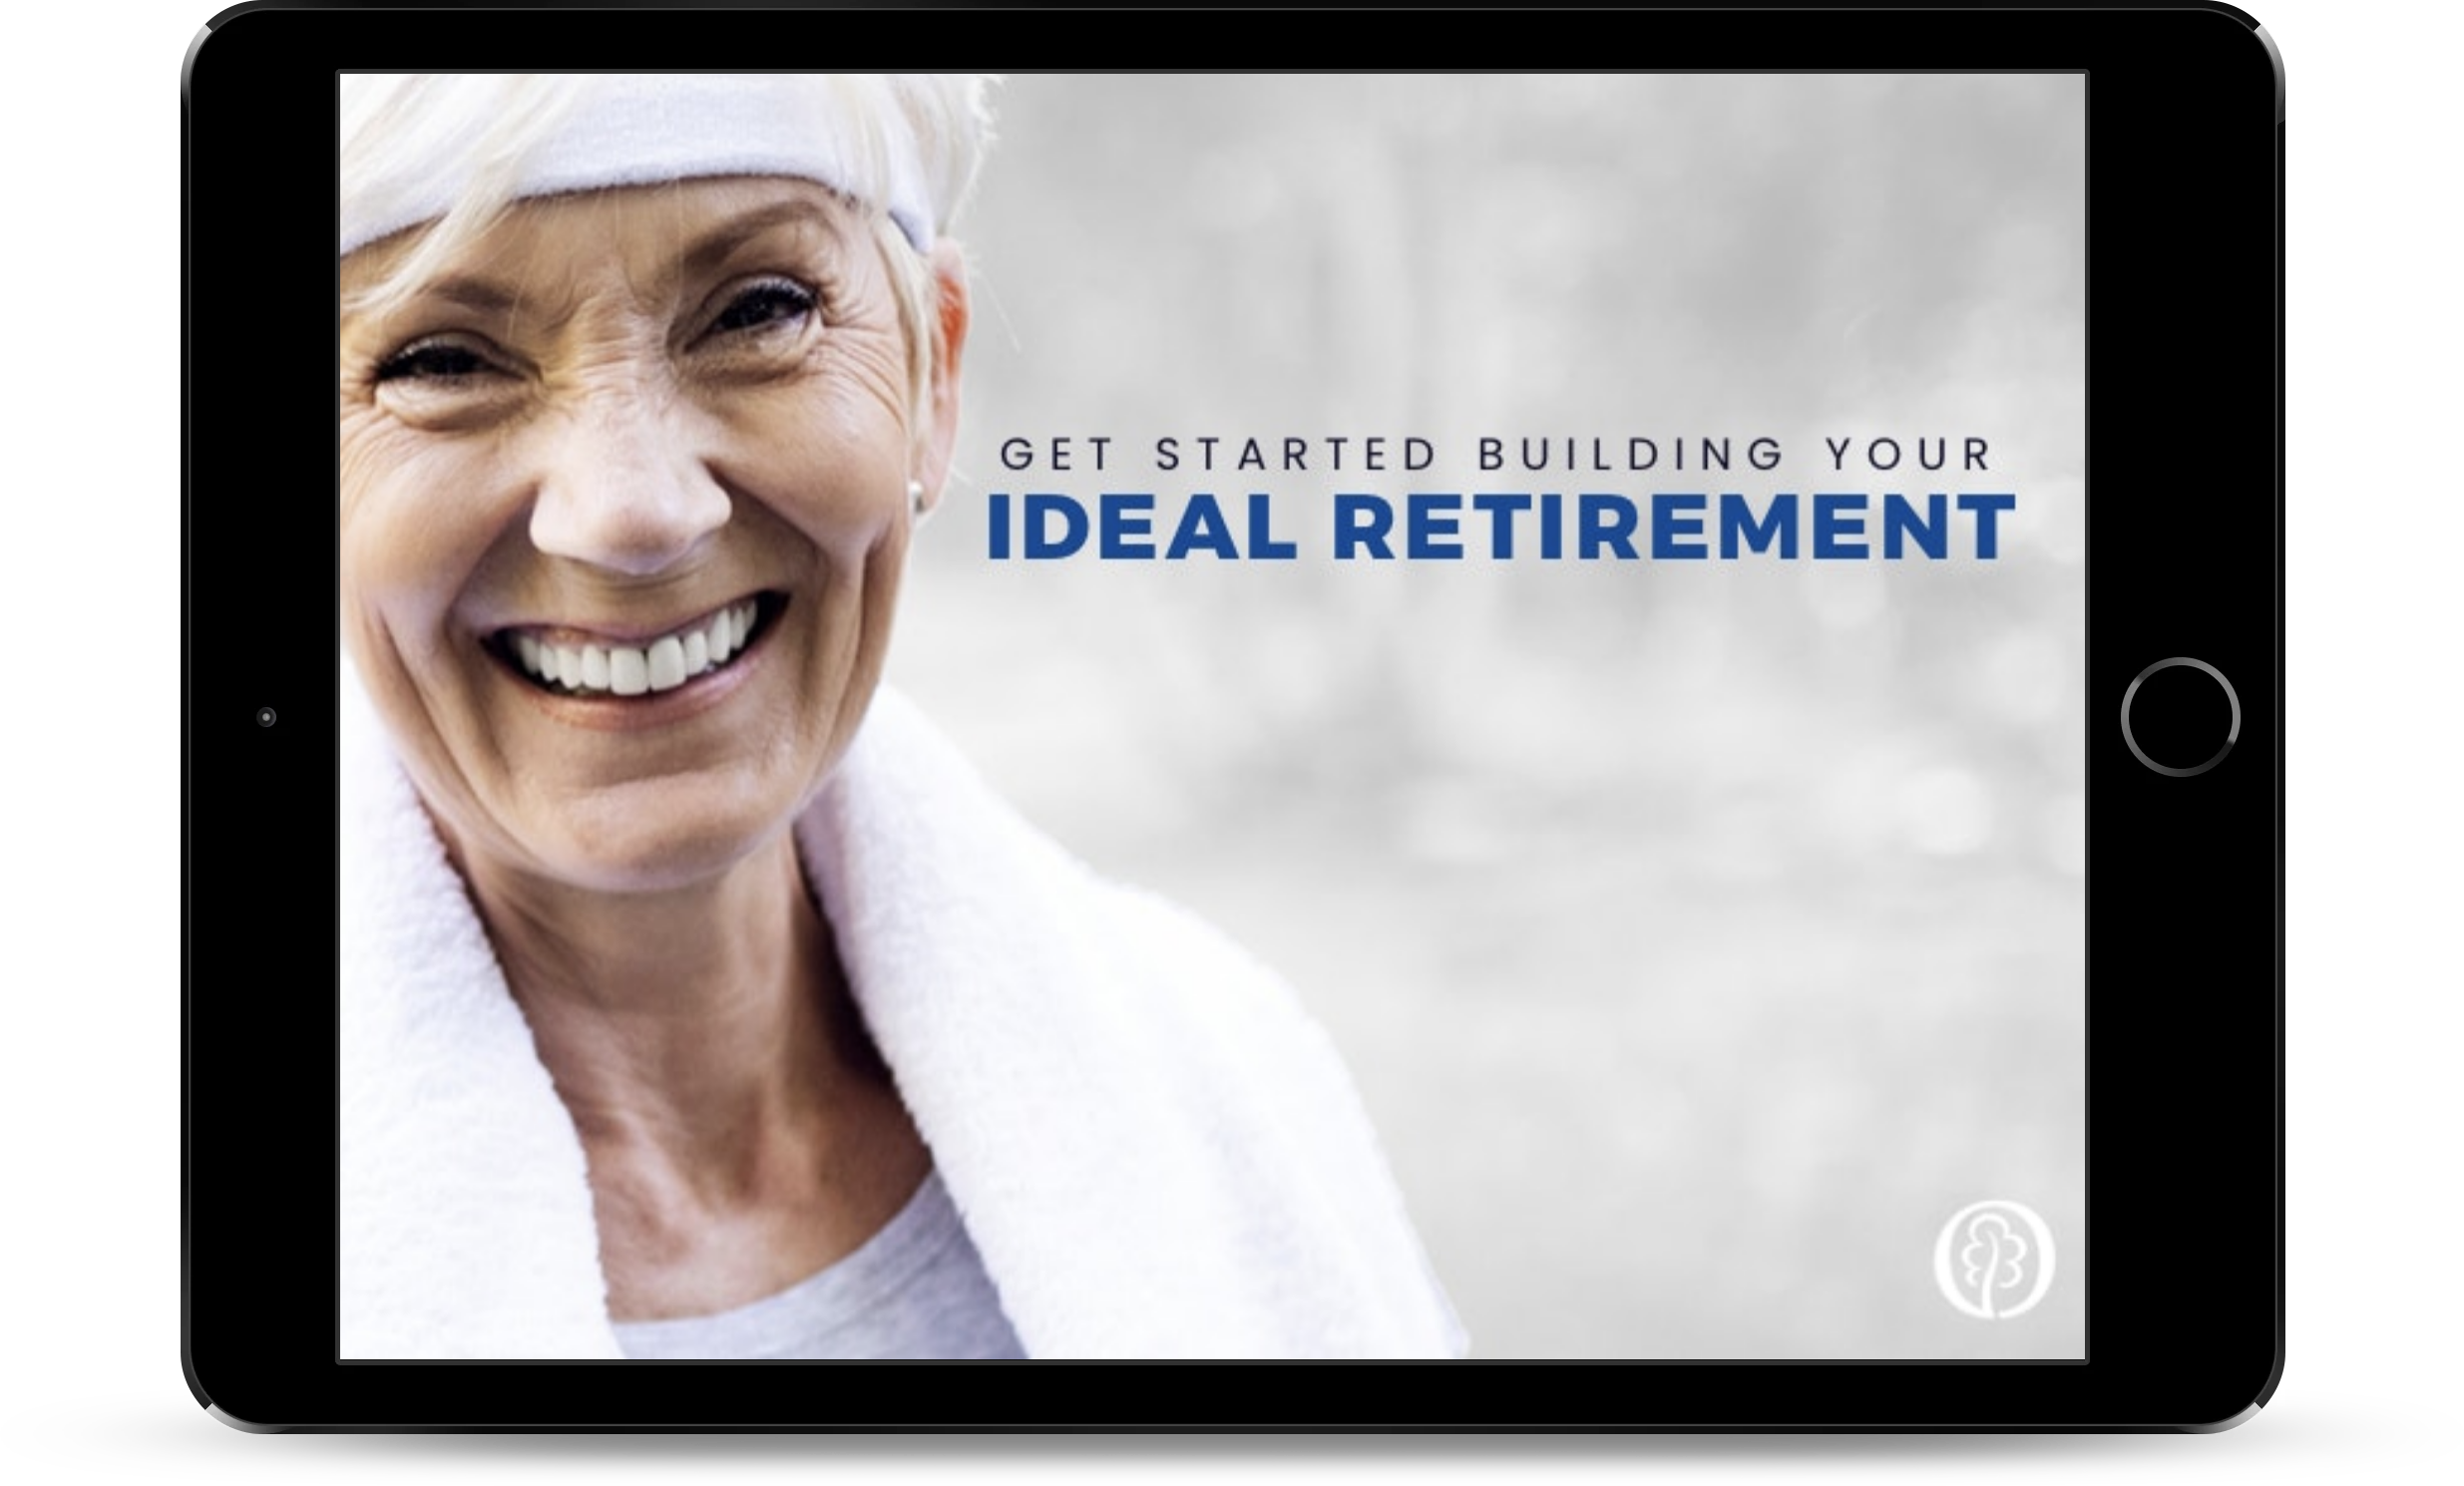 Get Started Building Your Ideal Retirement